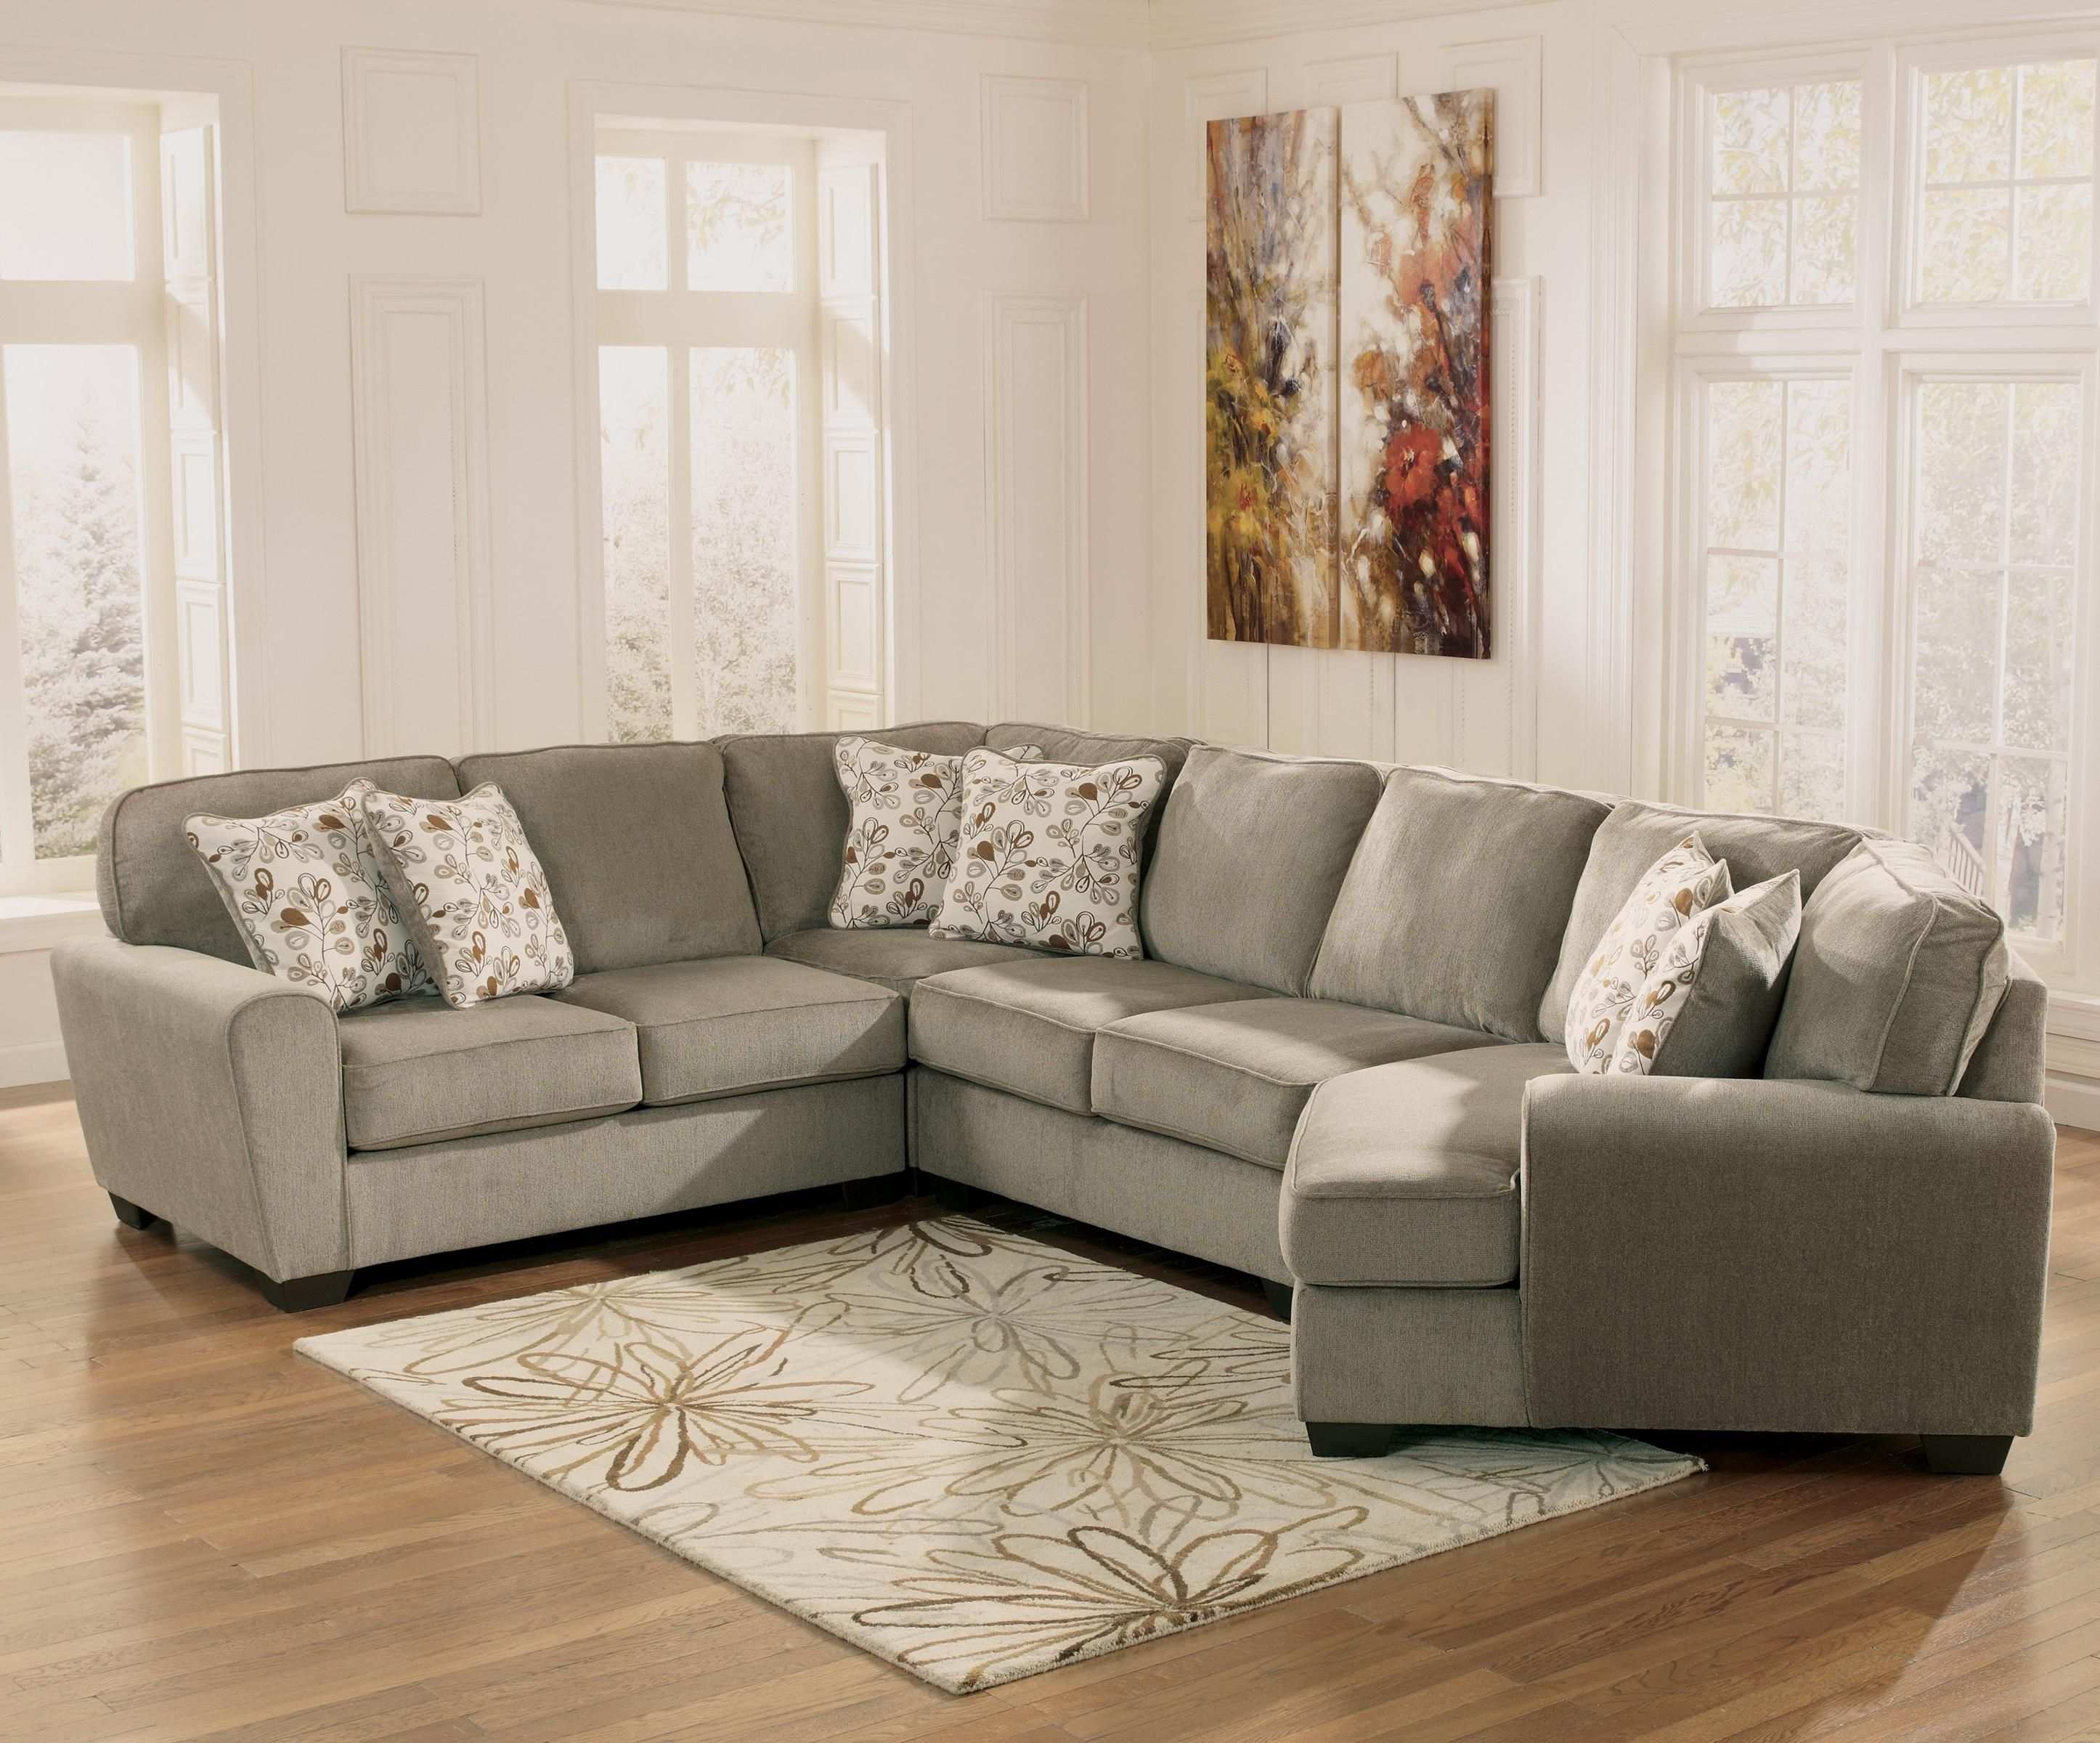 Patola Park – Patina 4 Piece Small Sectional With Right Cuddler Regarding Benton 4 Piece Sectionals (Image 16 of 25)